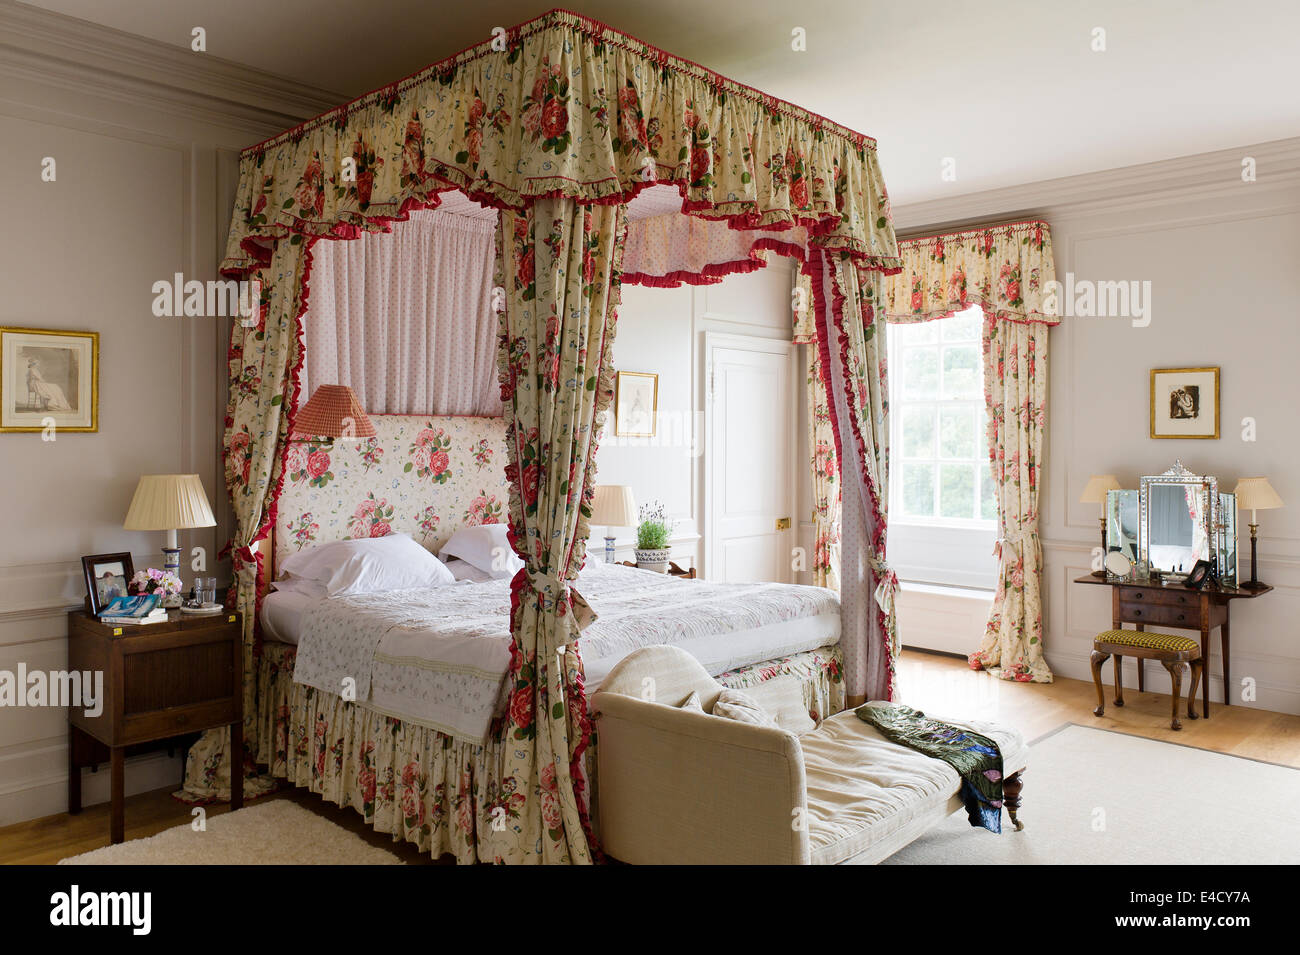 Fourposter Bed With Chintz Curtains In Bedroom With Chaise. A Romney  Drawing Hangs Above The Dressing Table